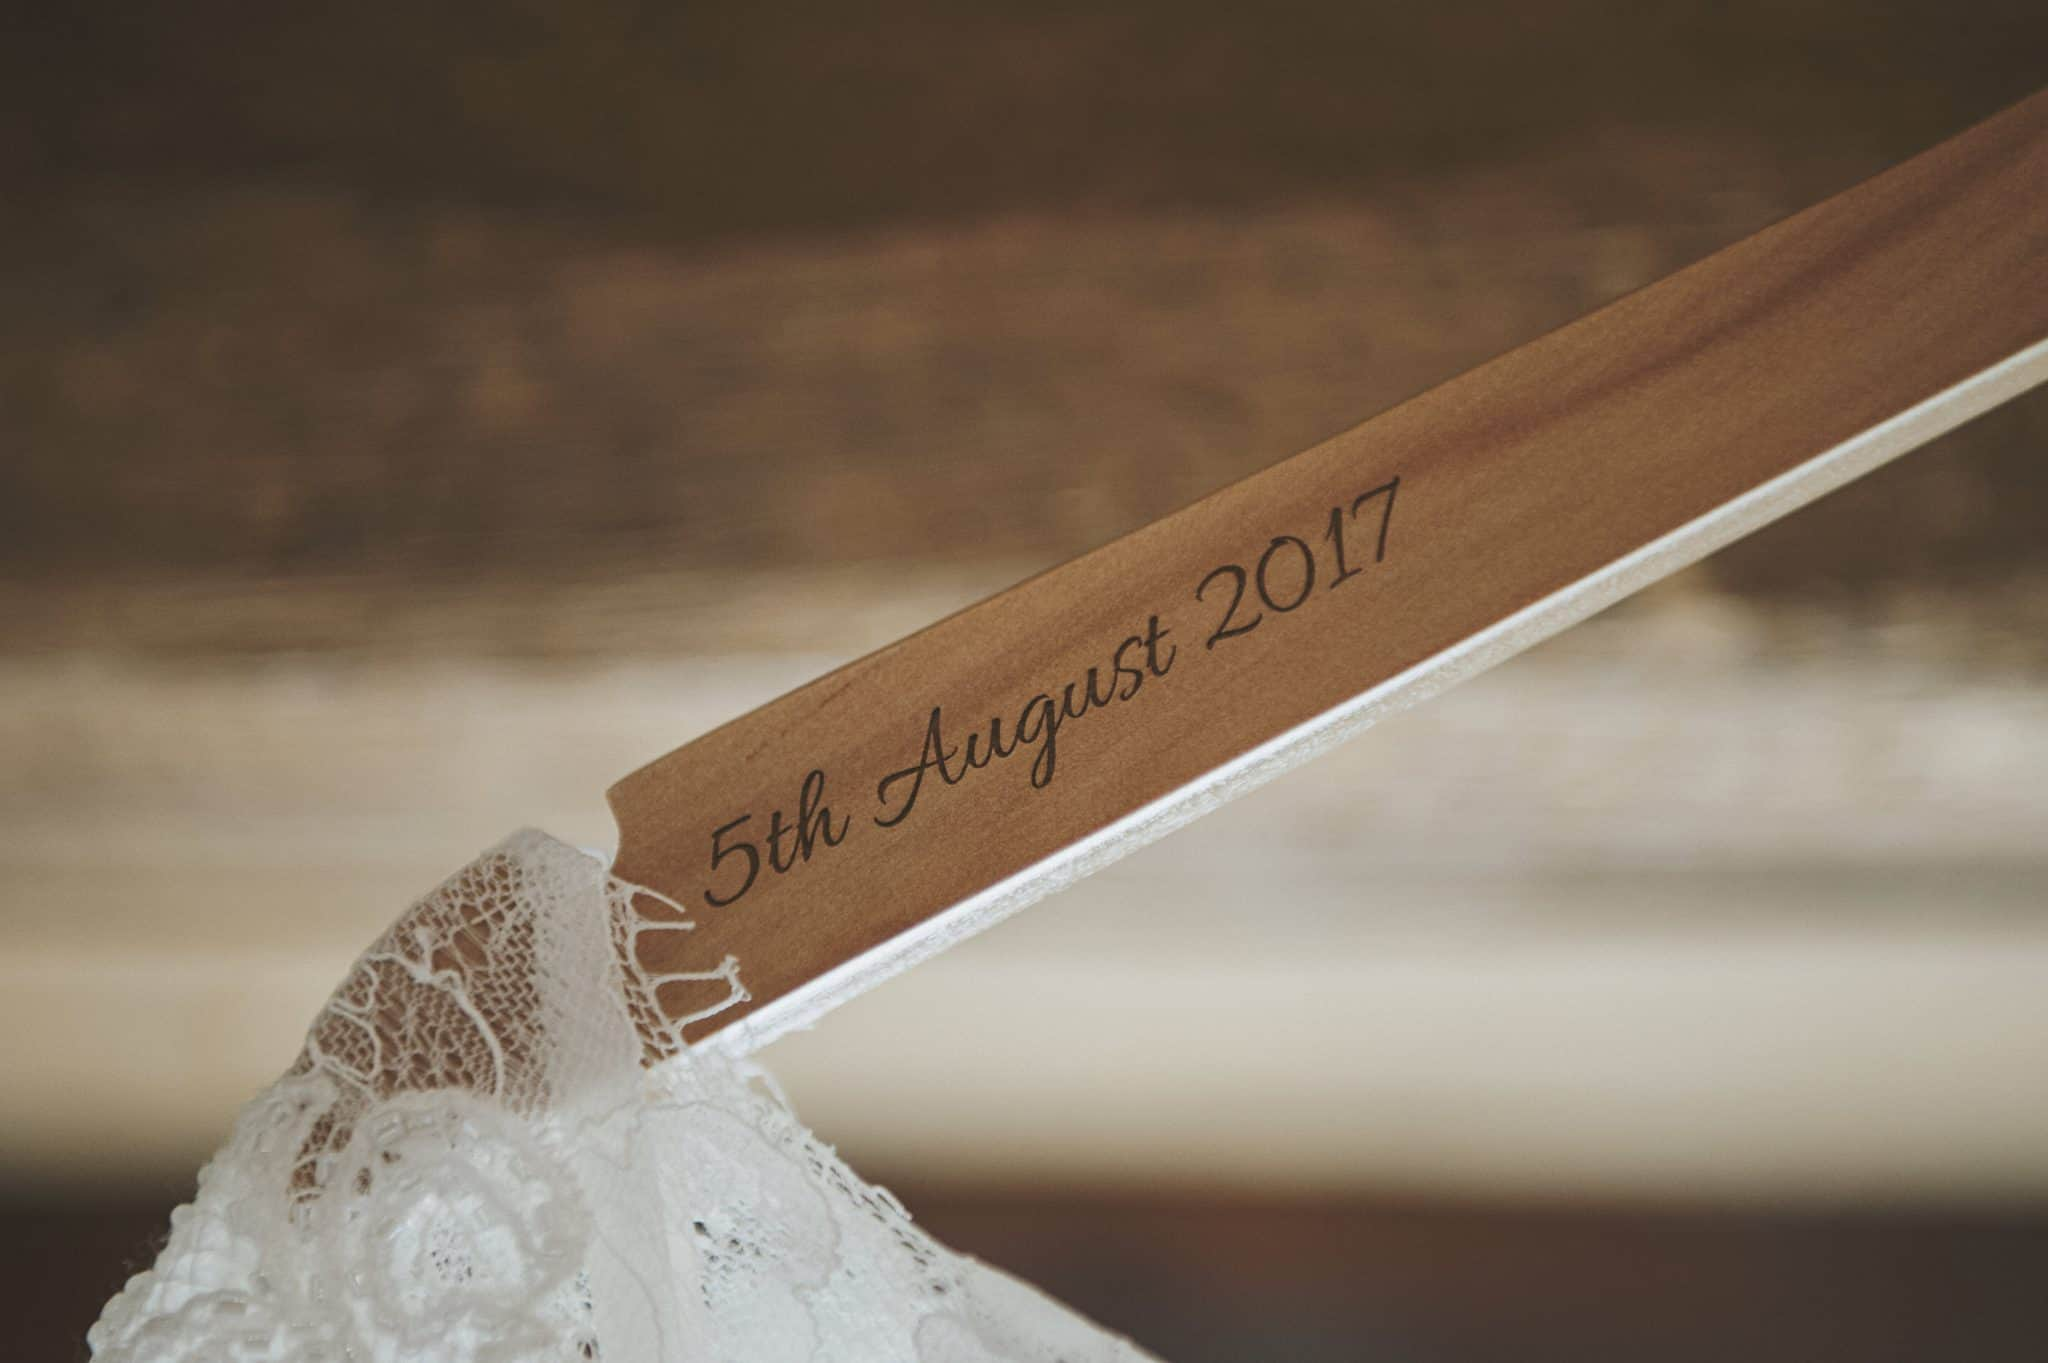 Wedding date engraved on a coat hanger